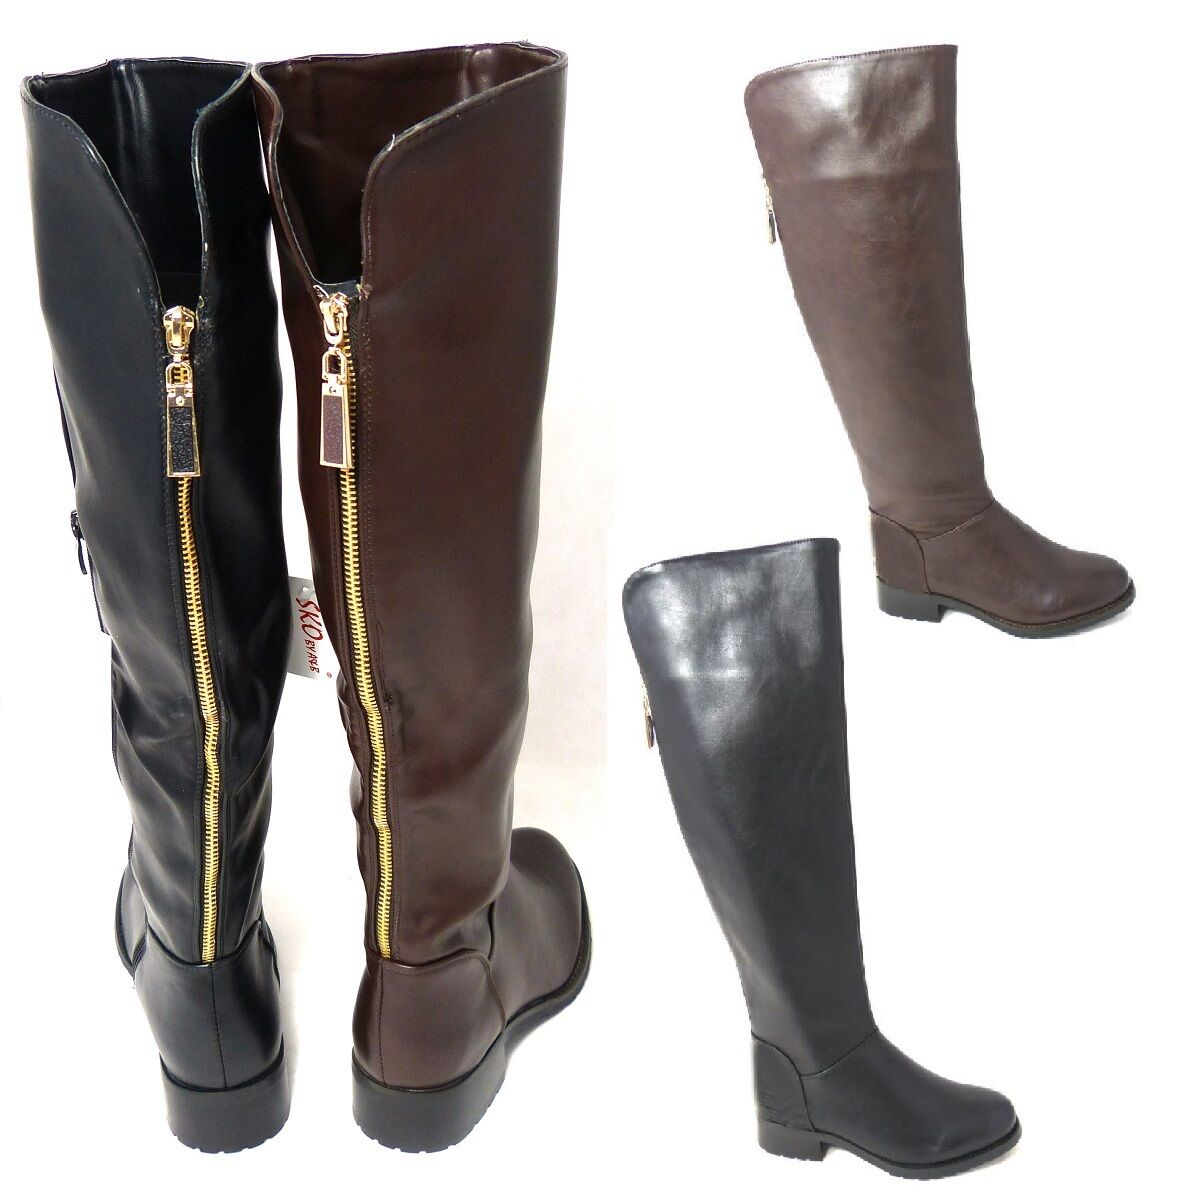 LADIES WOMENS KNEE HIGH GOLD BACK ZIP BIKER FASHION BOOTS SHOES SIZE 3-8